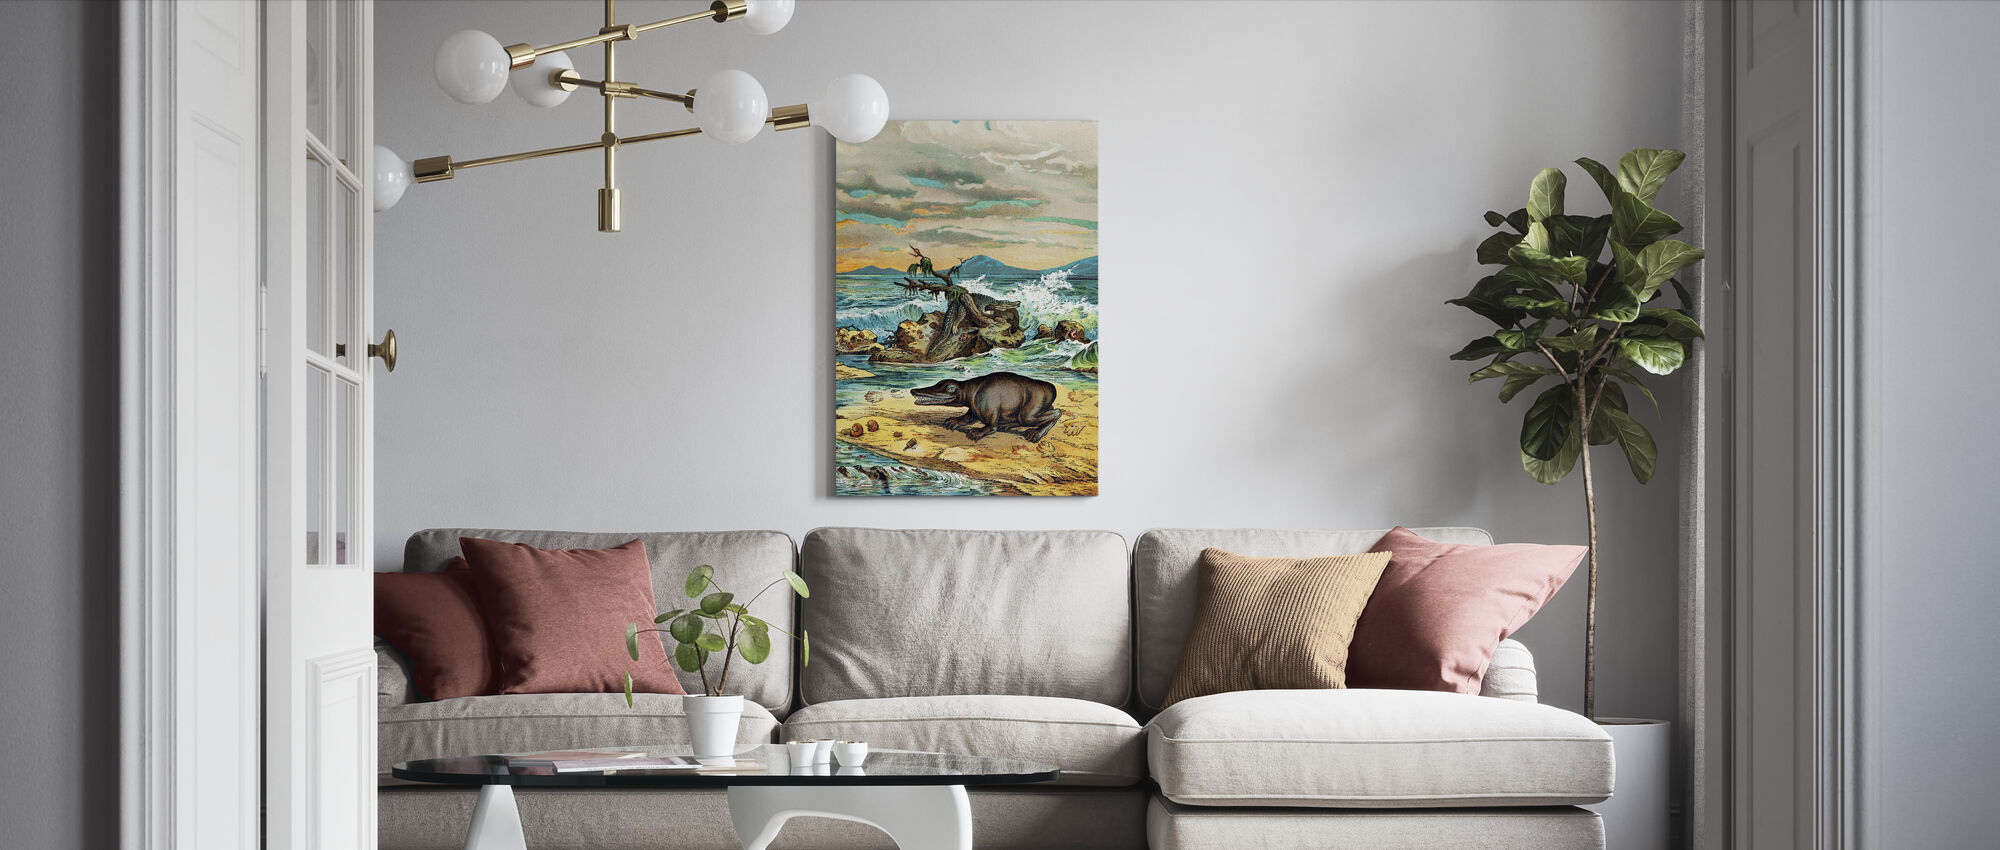 Triassic Coastal Environment - Canvas print - Living Room